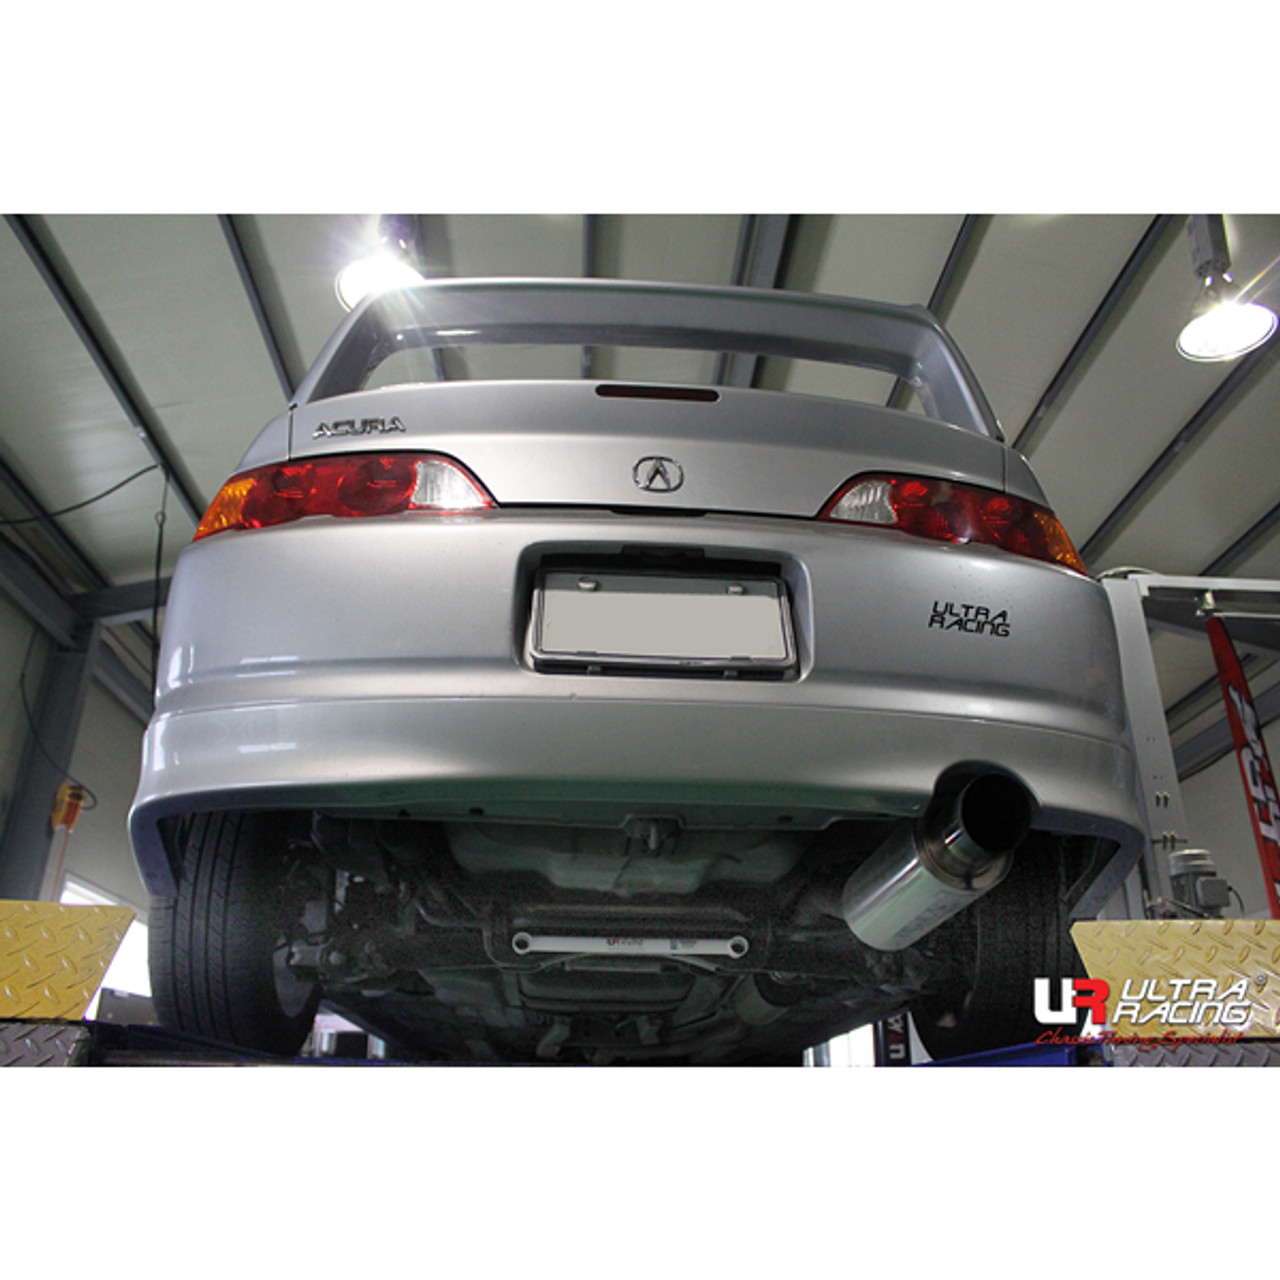 Acura RSX 10 Point Half Cage By Ultra Racing USA